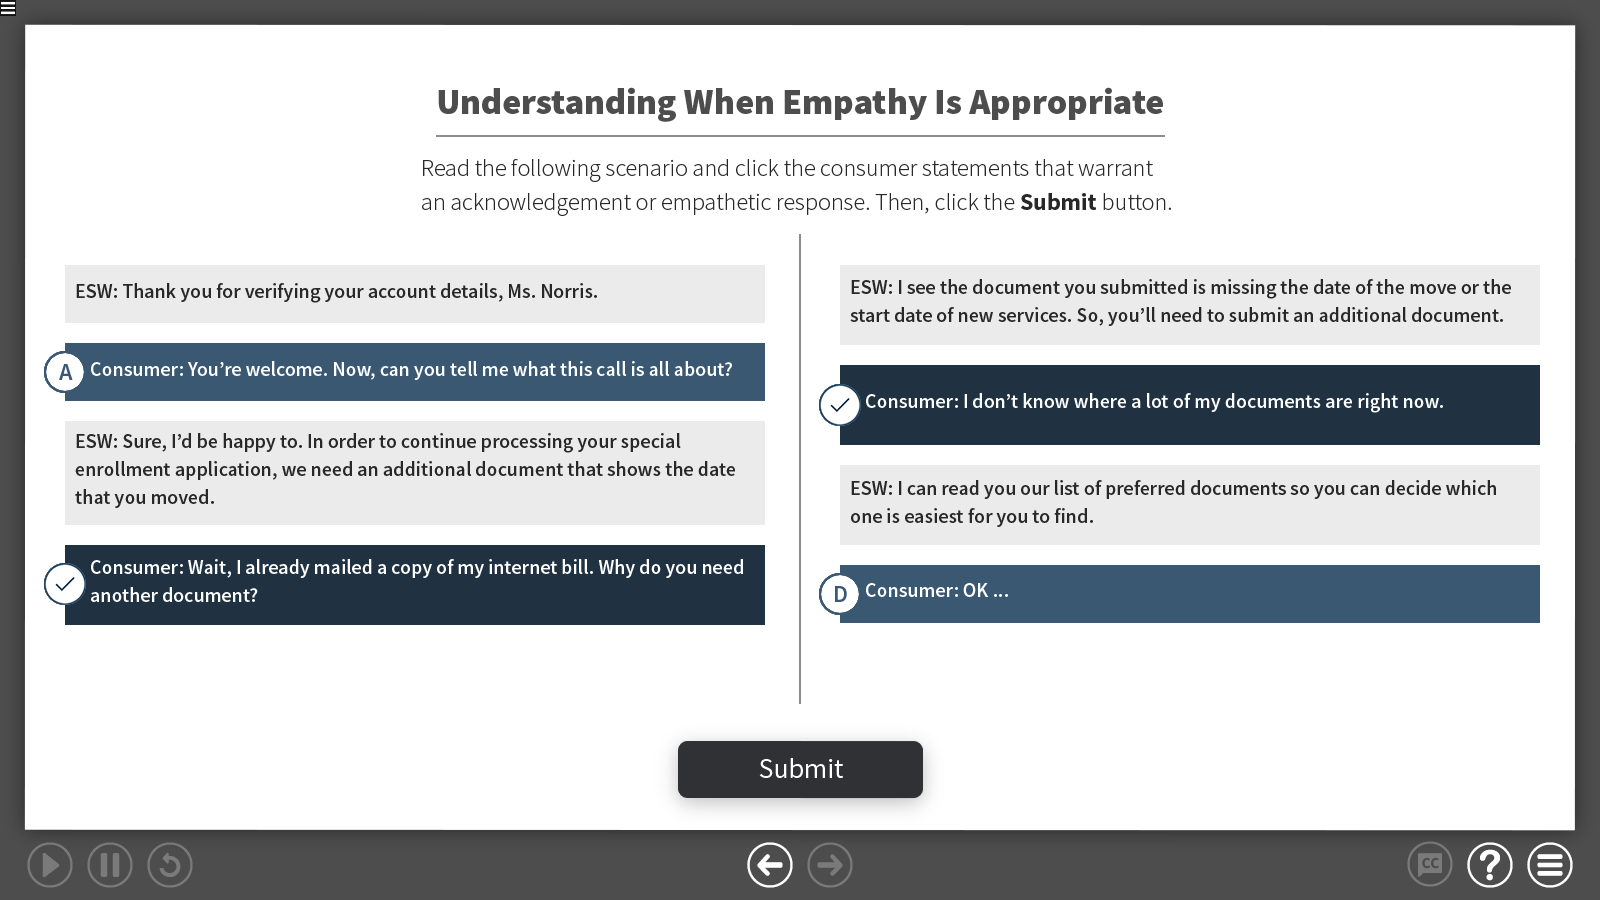 a multi-select activitiy to choose consumer language that requires an empathetic response